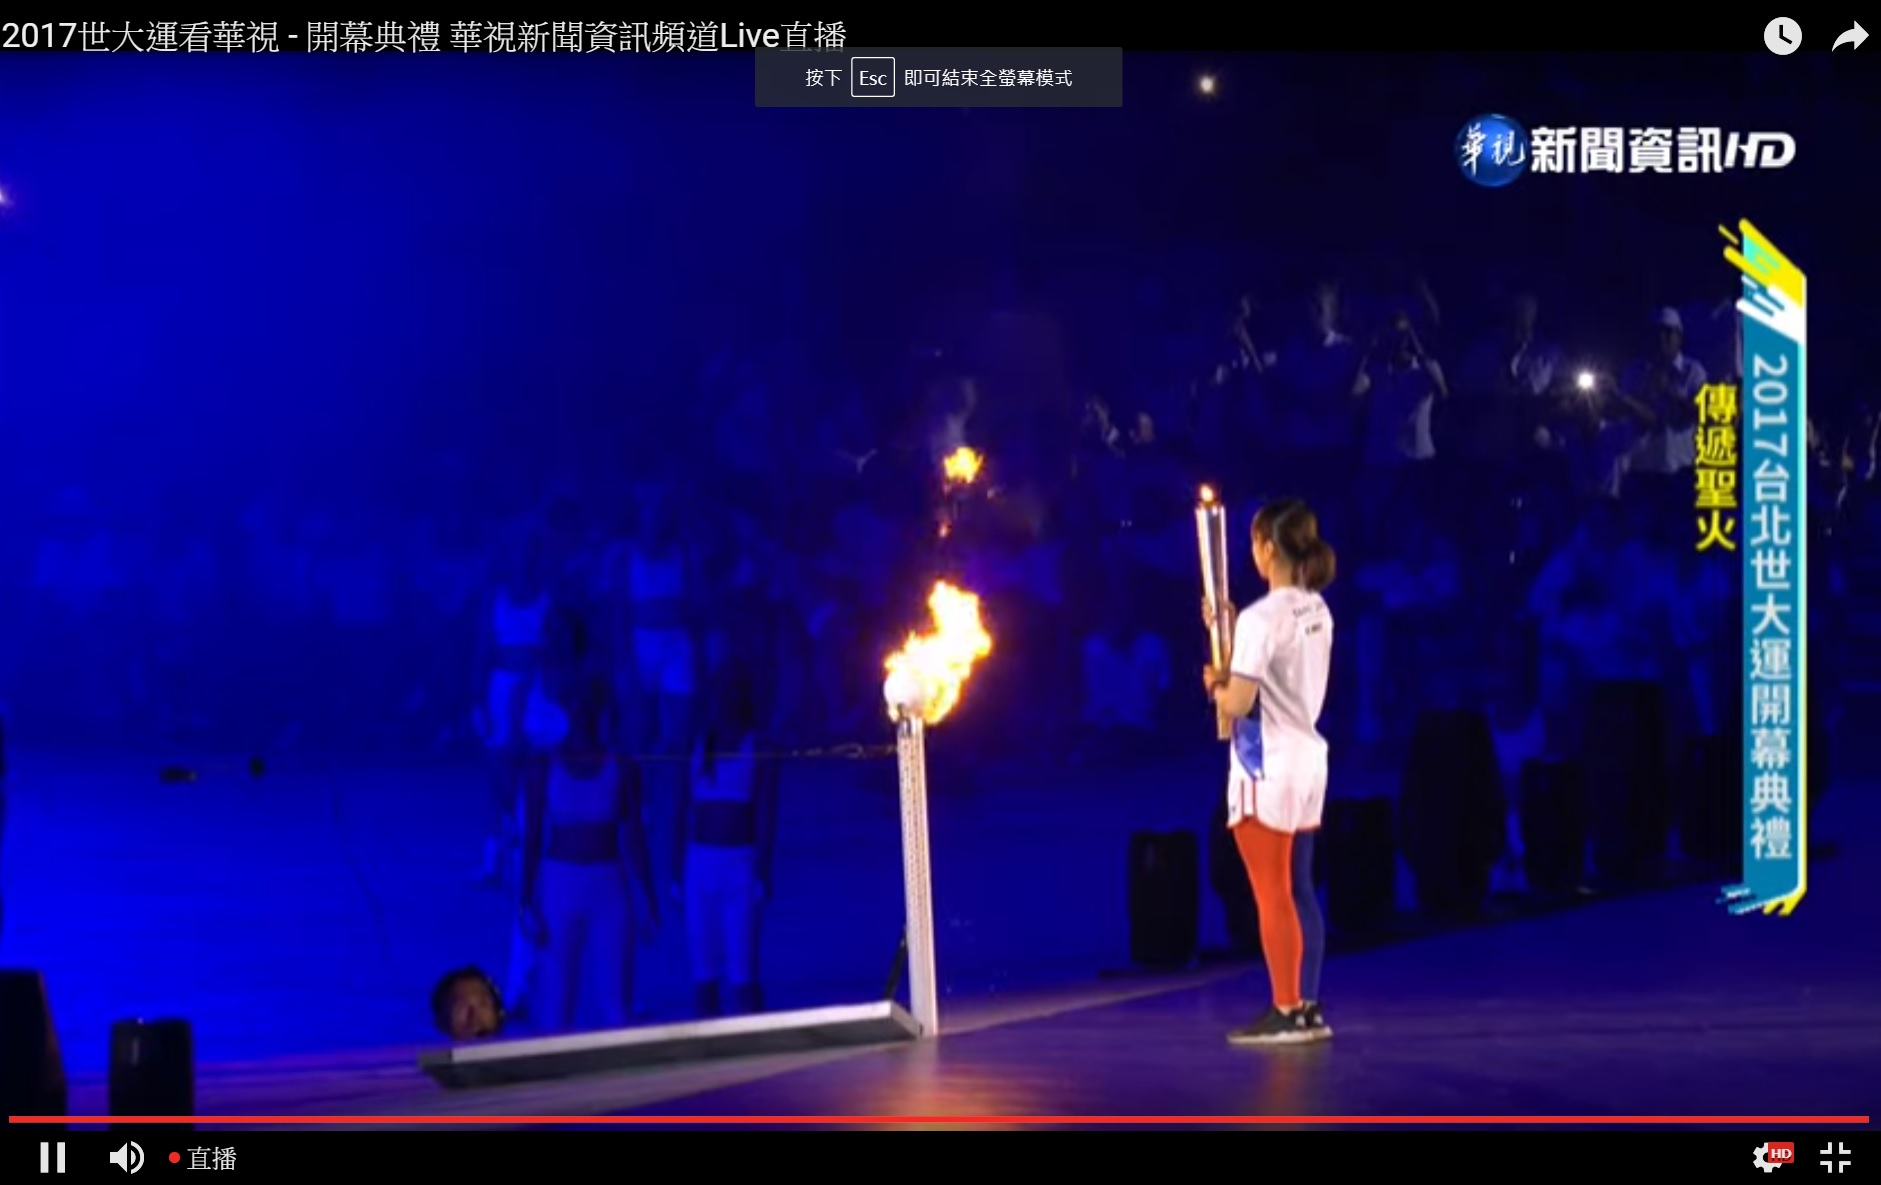 Preparing to pass on the flame (all photos from CTS broadcast).